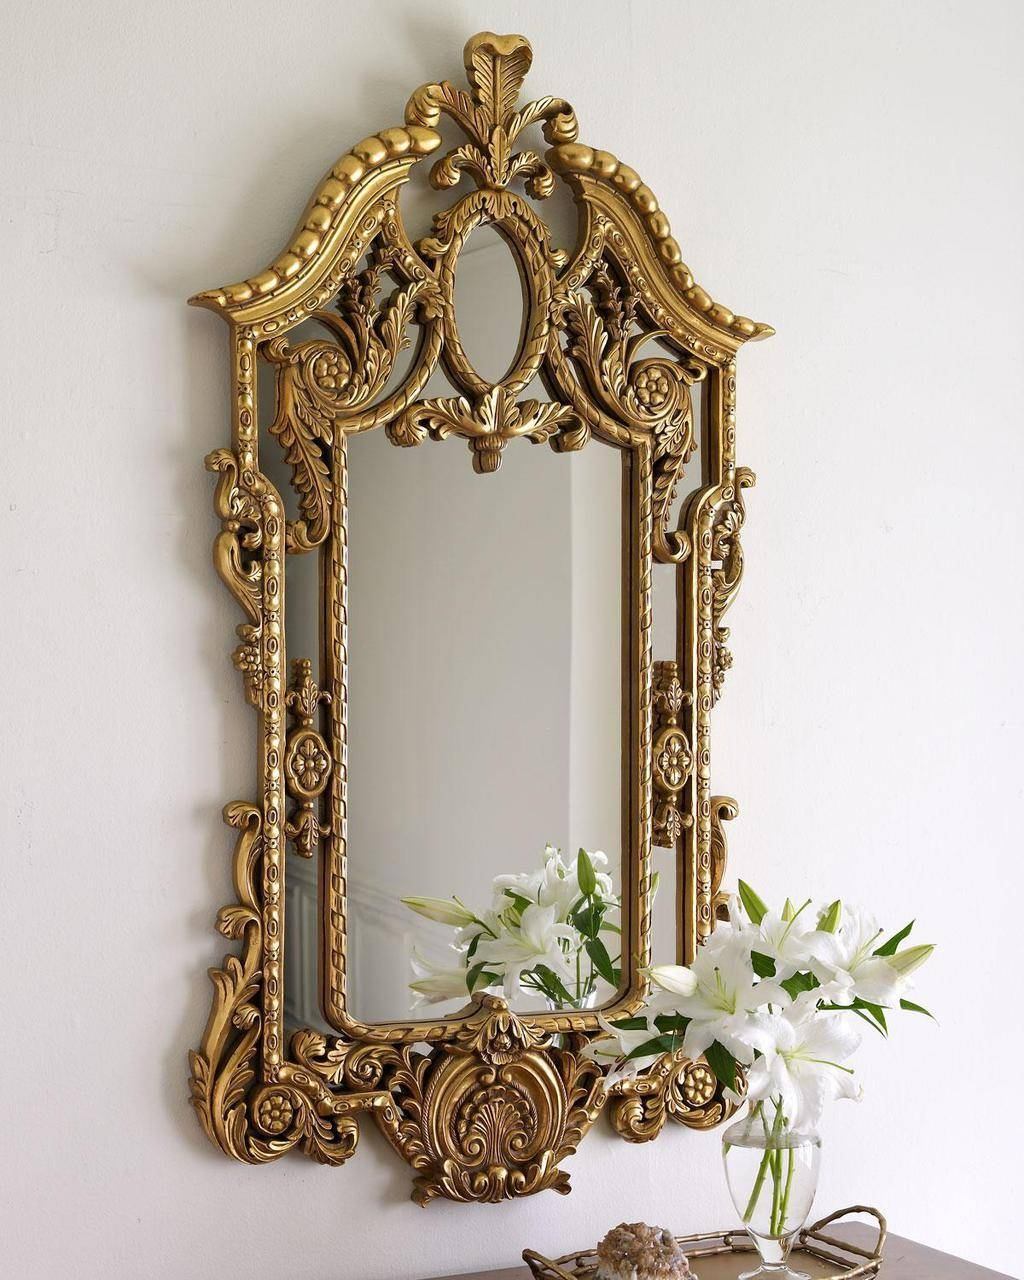 Queen Mirror Frame With Golden Framework Pretty And Expensive pertaining to Expensive Mirrors (Image 24 of 25)